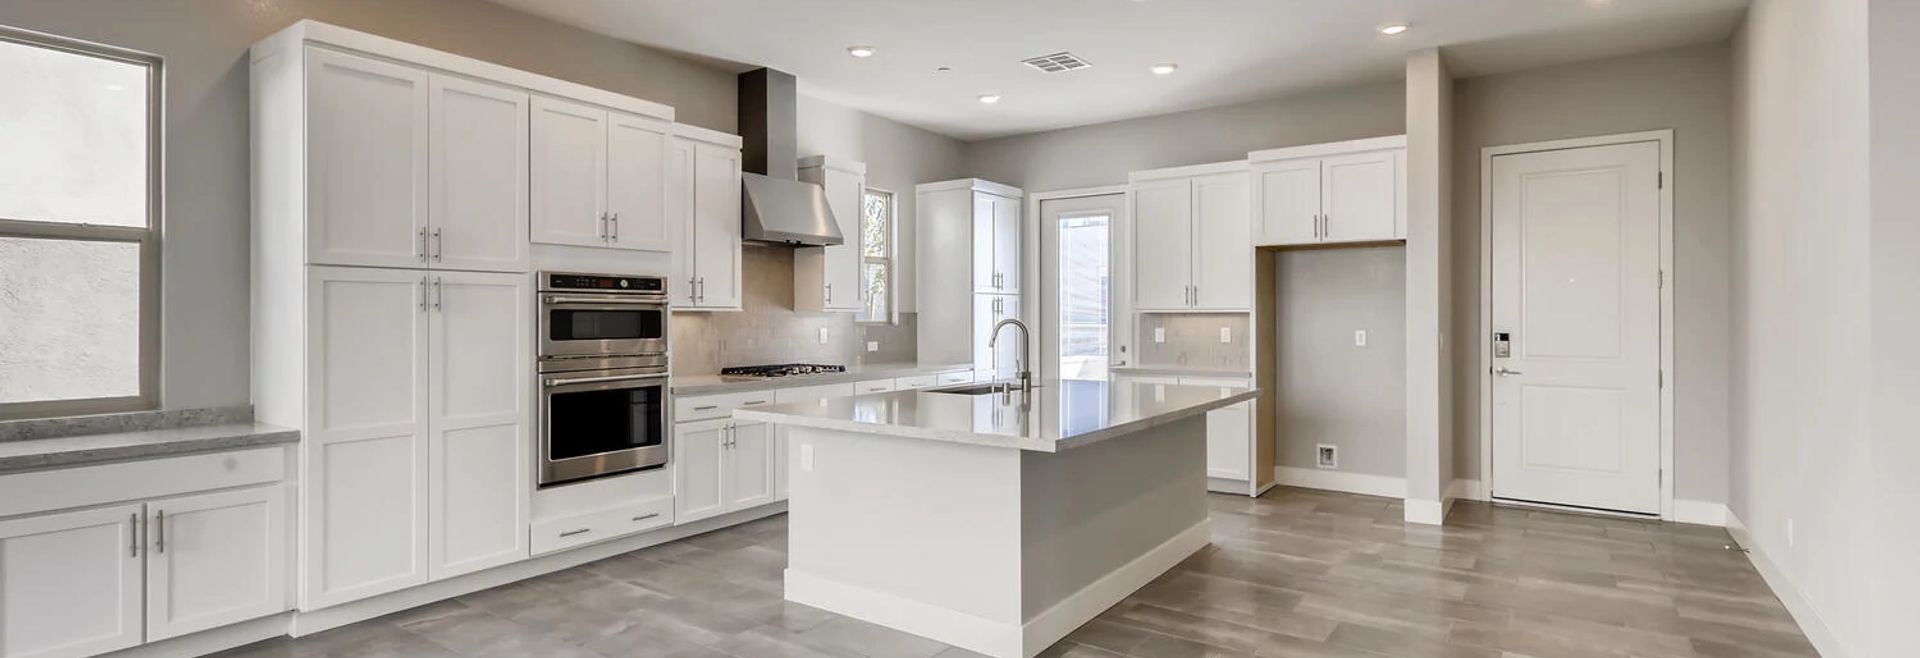 Kitchen featured in the Radiant By Shea Homes - Trilogy in Las Vegas, NV